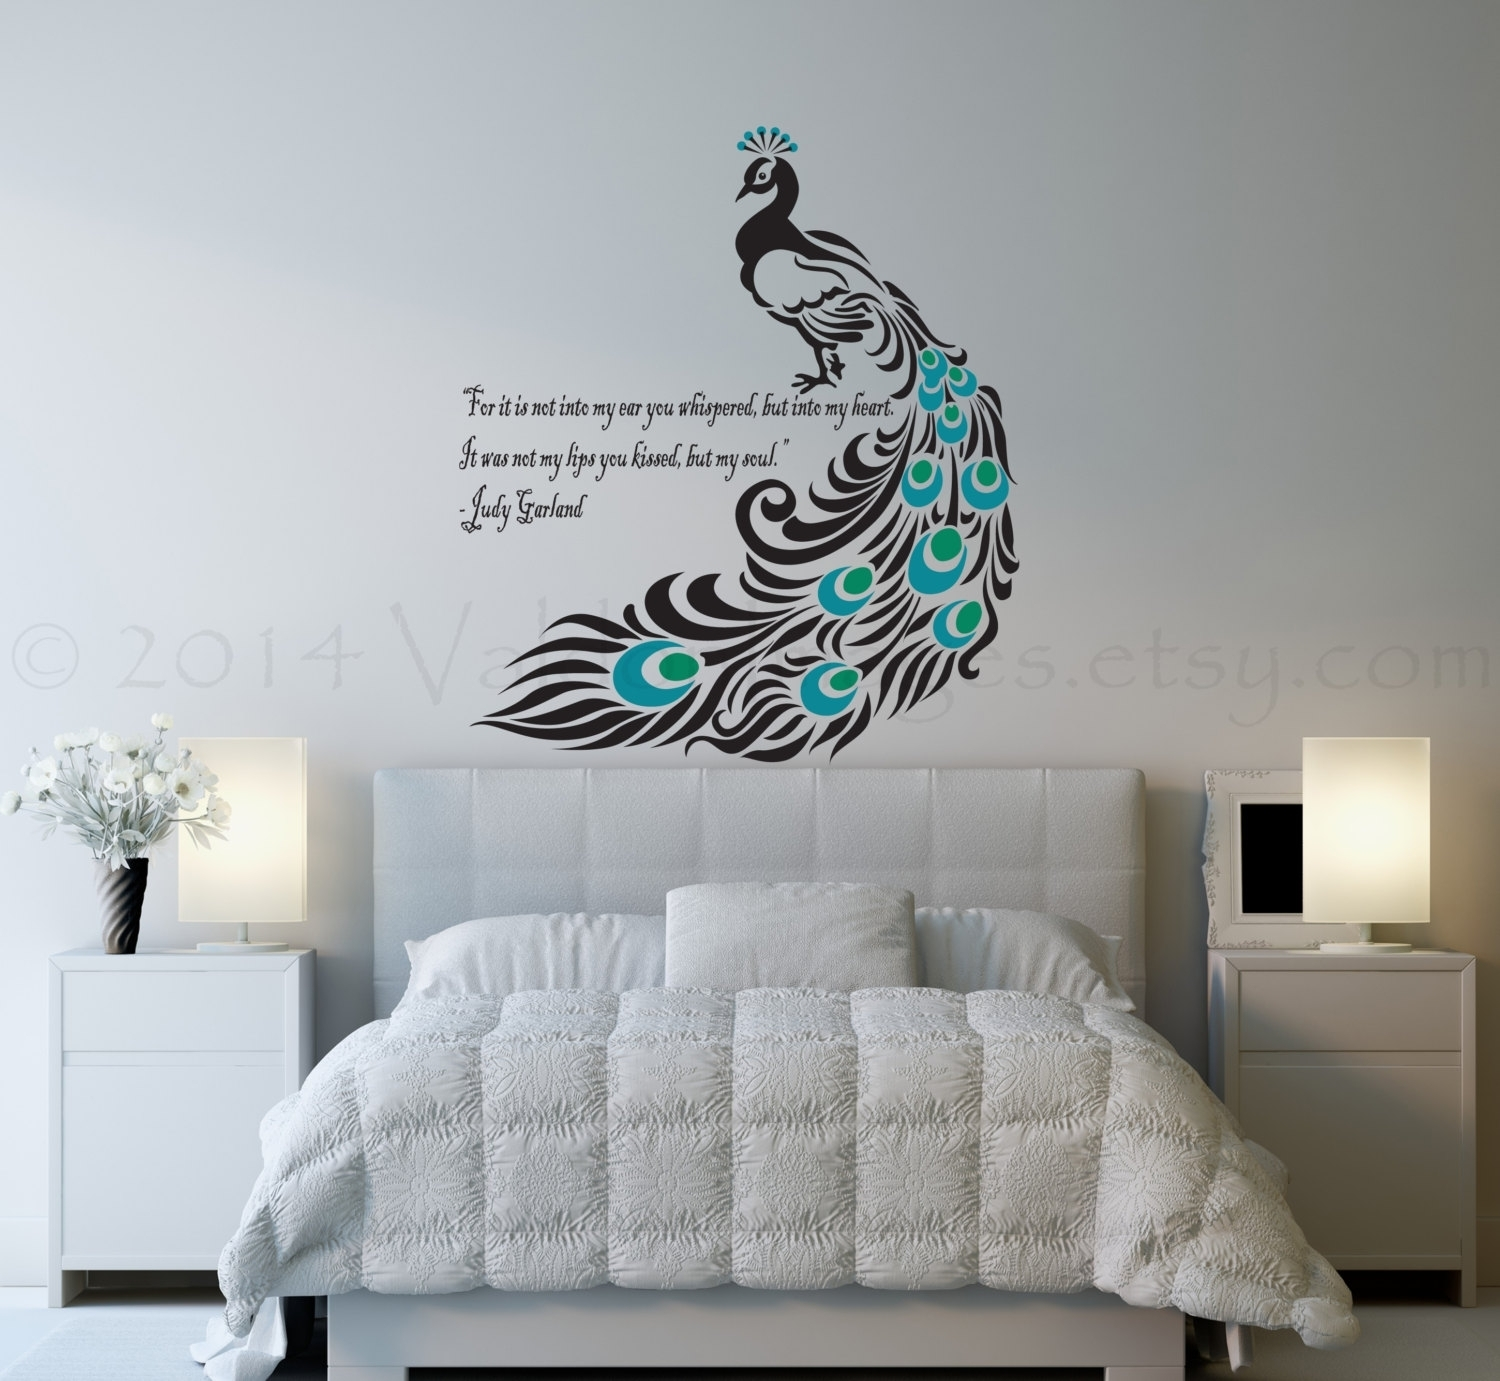 New Wall Art Painting Ideas For Bedroom | Wall Decorations With 2018 Wall Art For Bedroom (View 15 of 15)